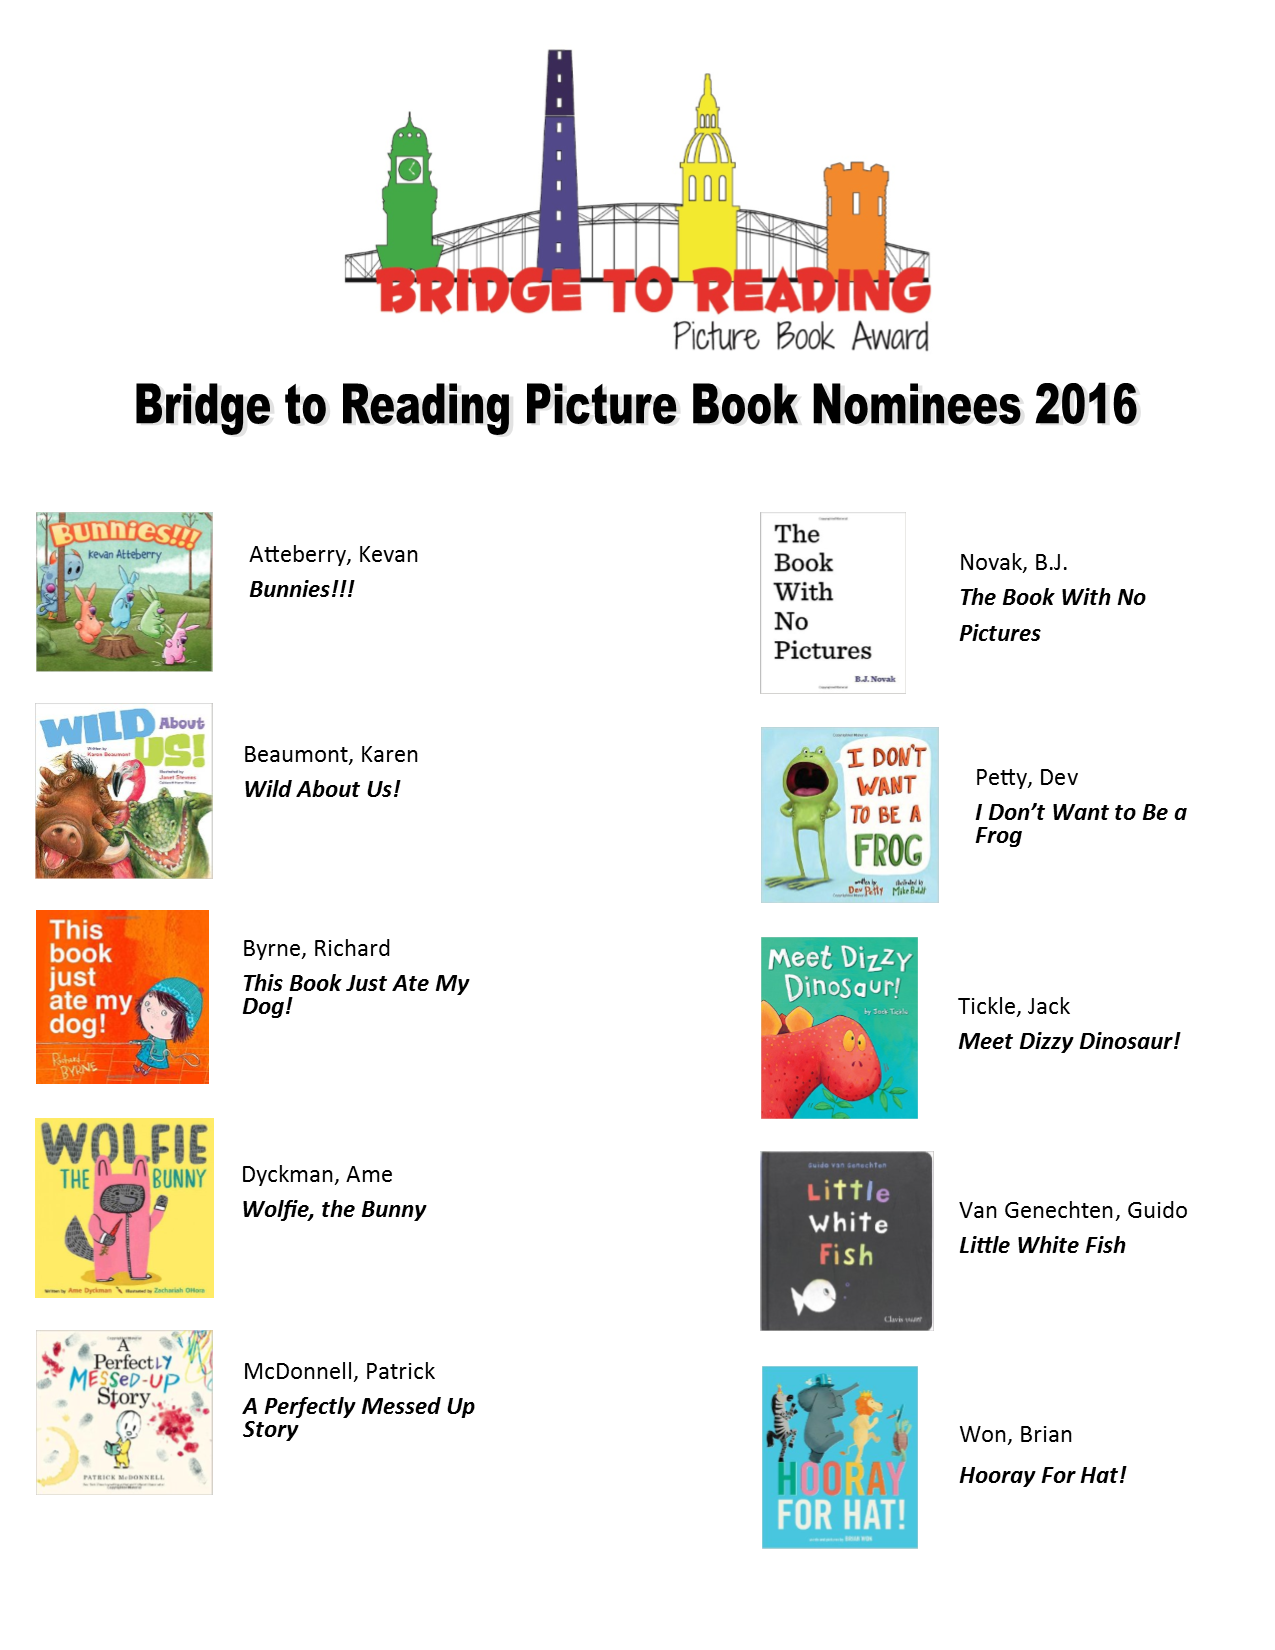 Bridge to Reading Book Nominees 2016 flyer